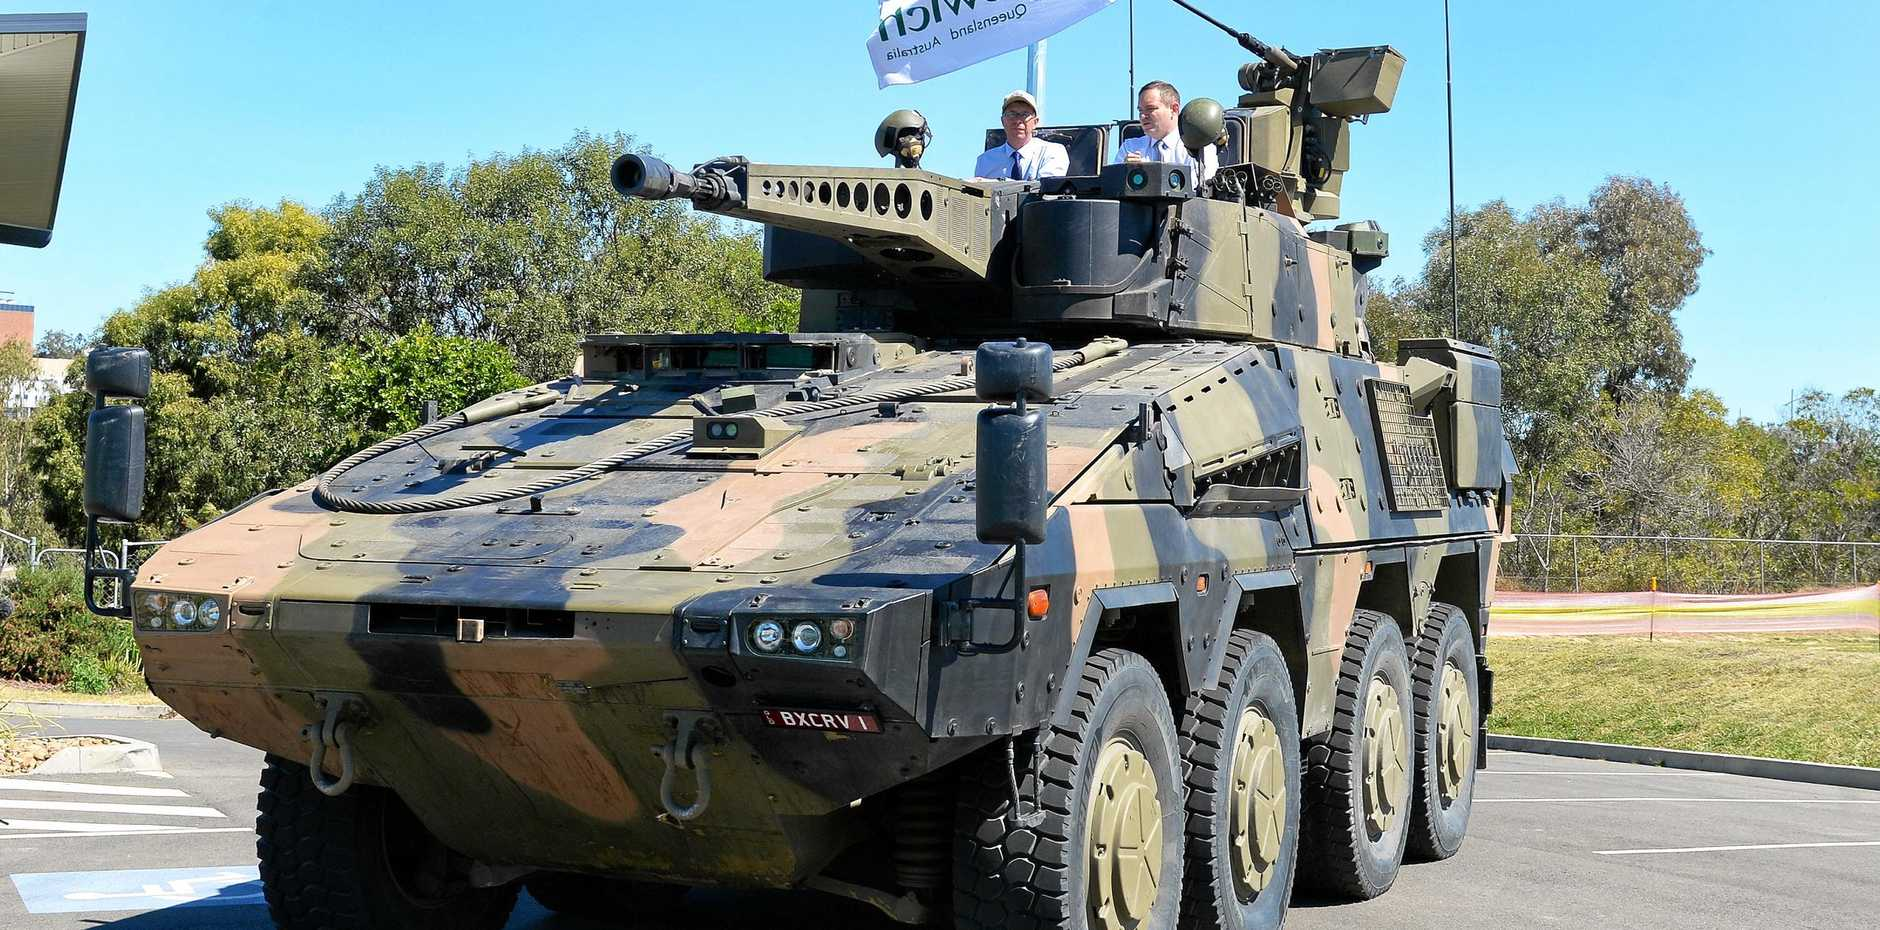 SPREAD IT AROUND: A reader believes Bundaberg would be the better place for Rheinmetall to manufacture from, not Ipswich.